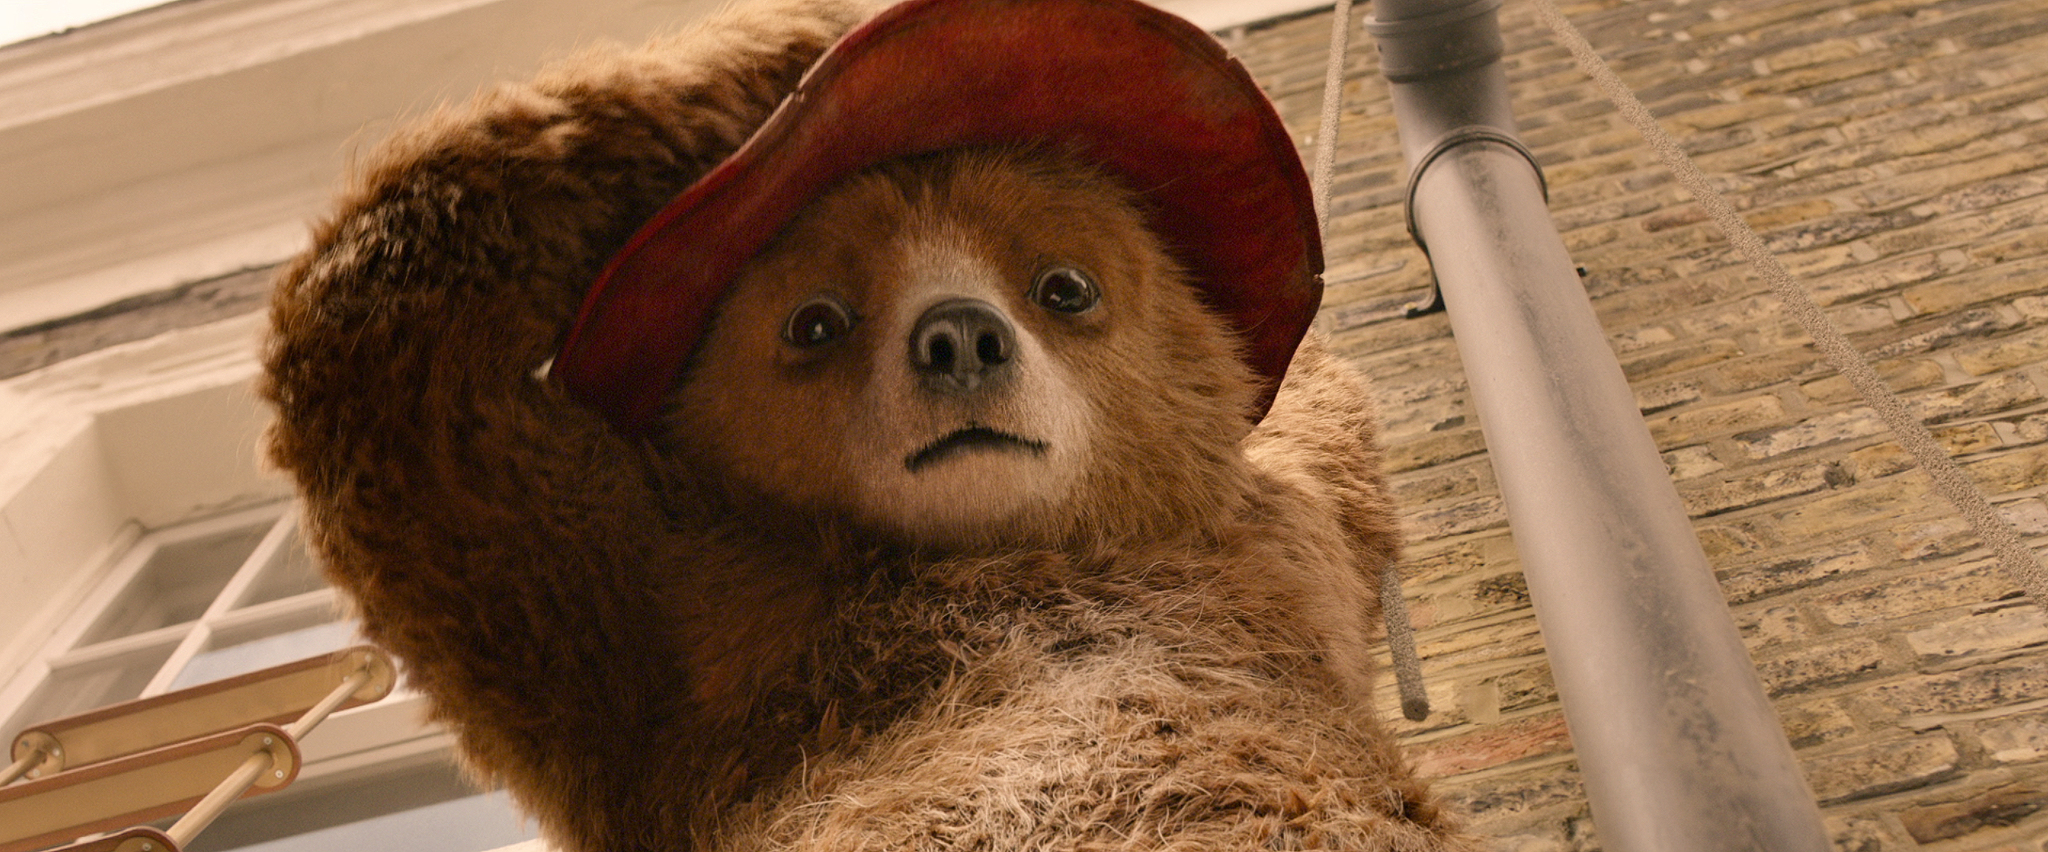 Image result for Paddington 2 movie stills